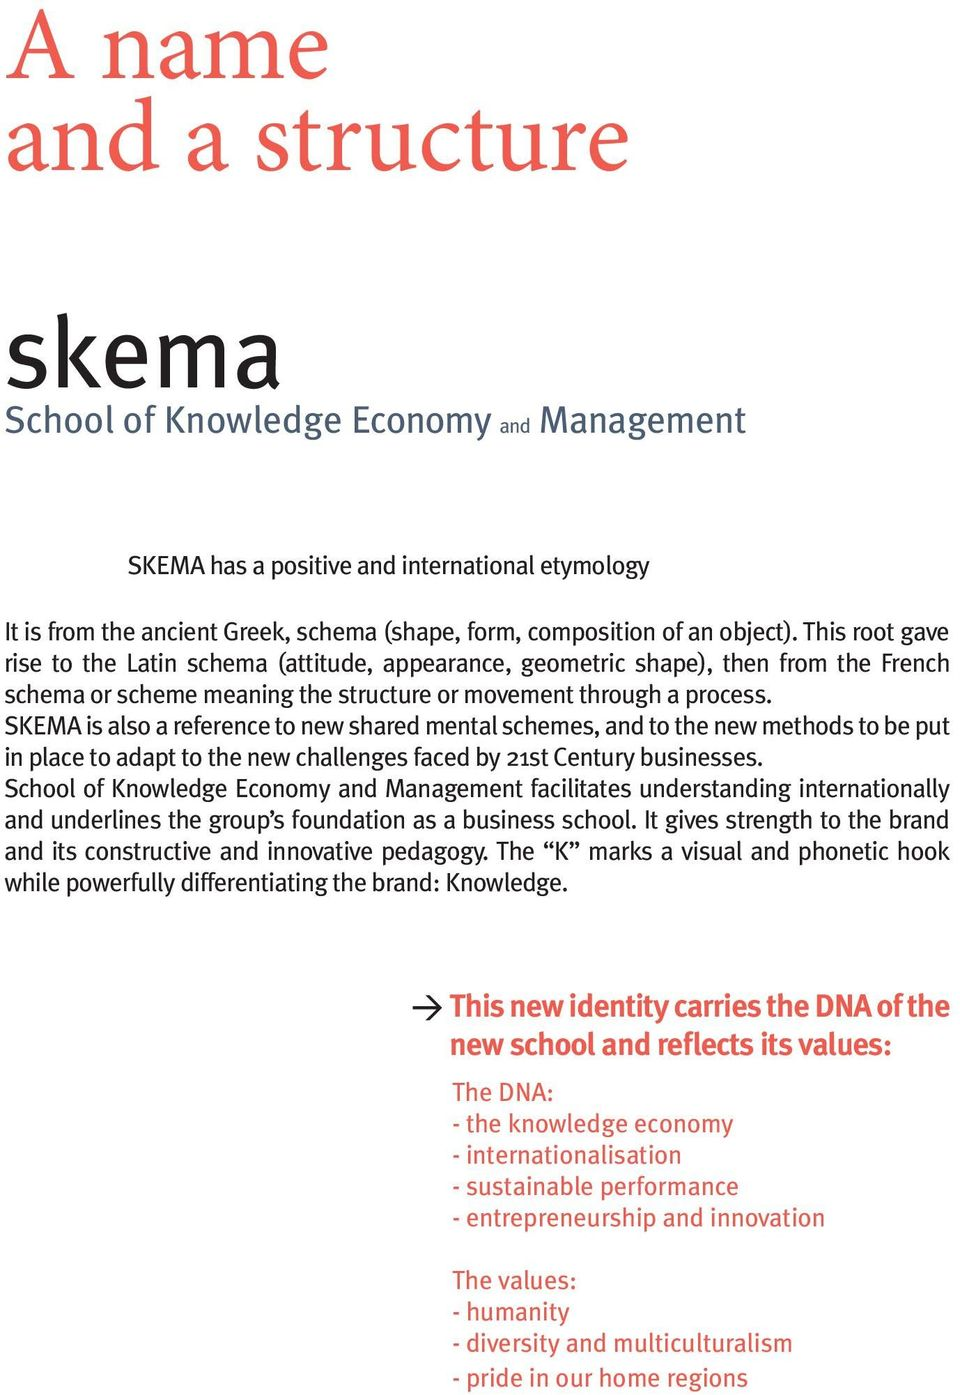 SKEMA is also a reference to new shared mental schemes, and to the new methods to be put in place to adapt to the new challenges faced by 21st Century businesses.